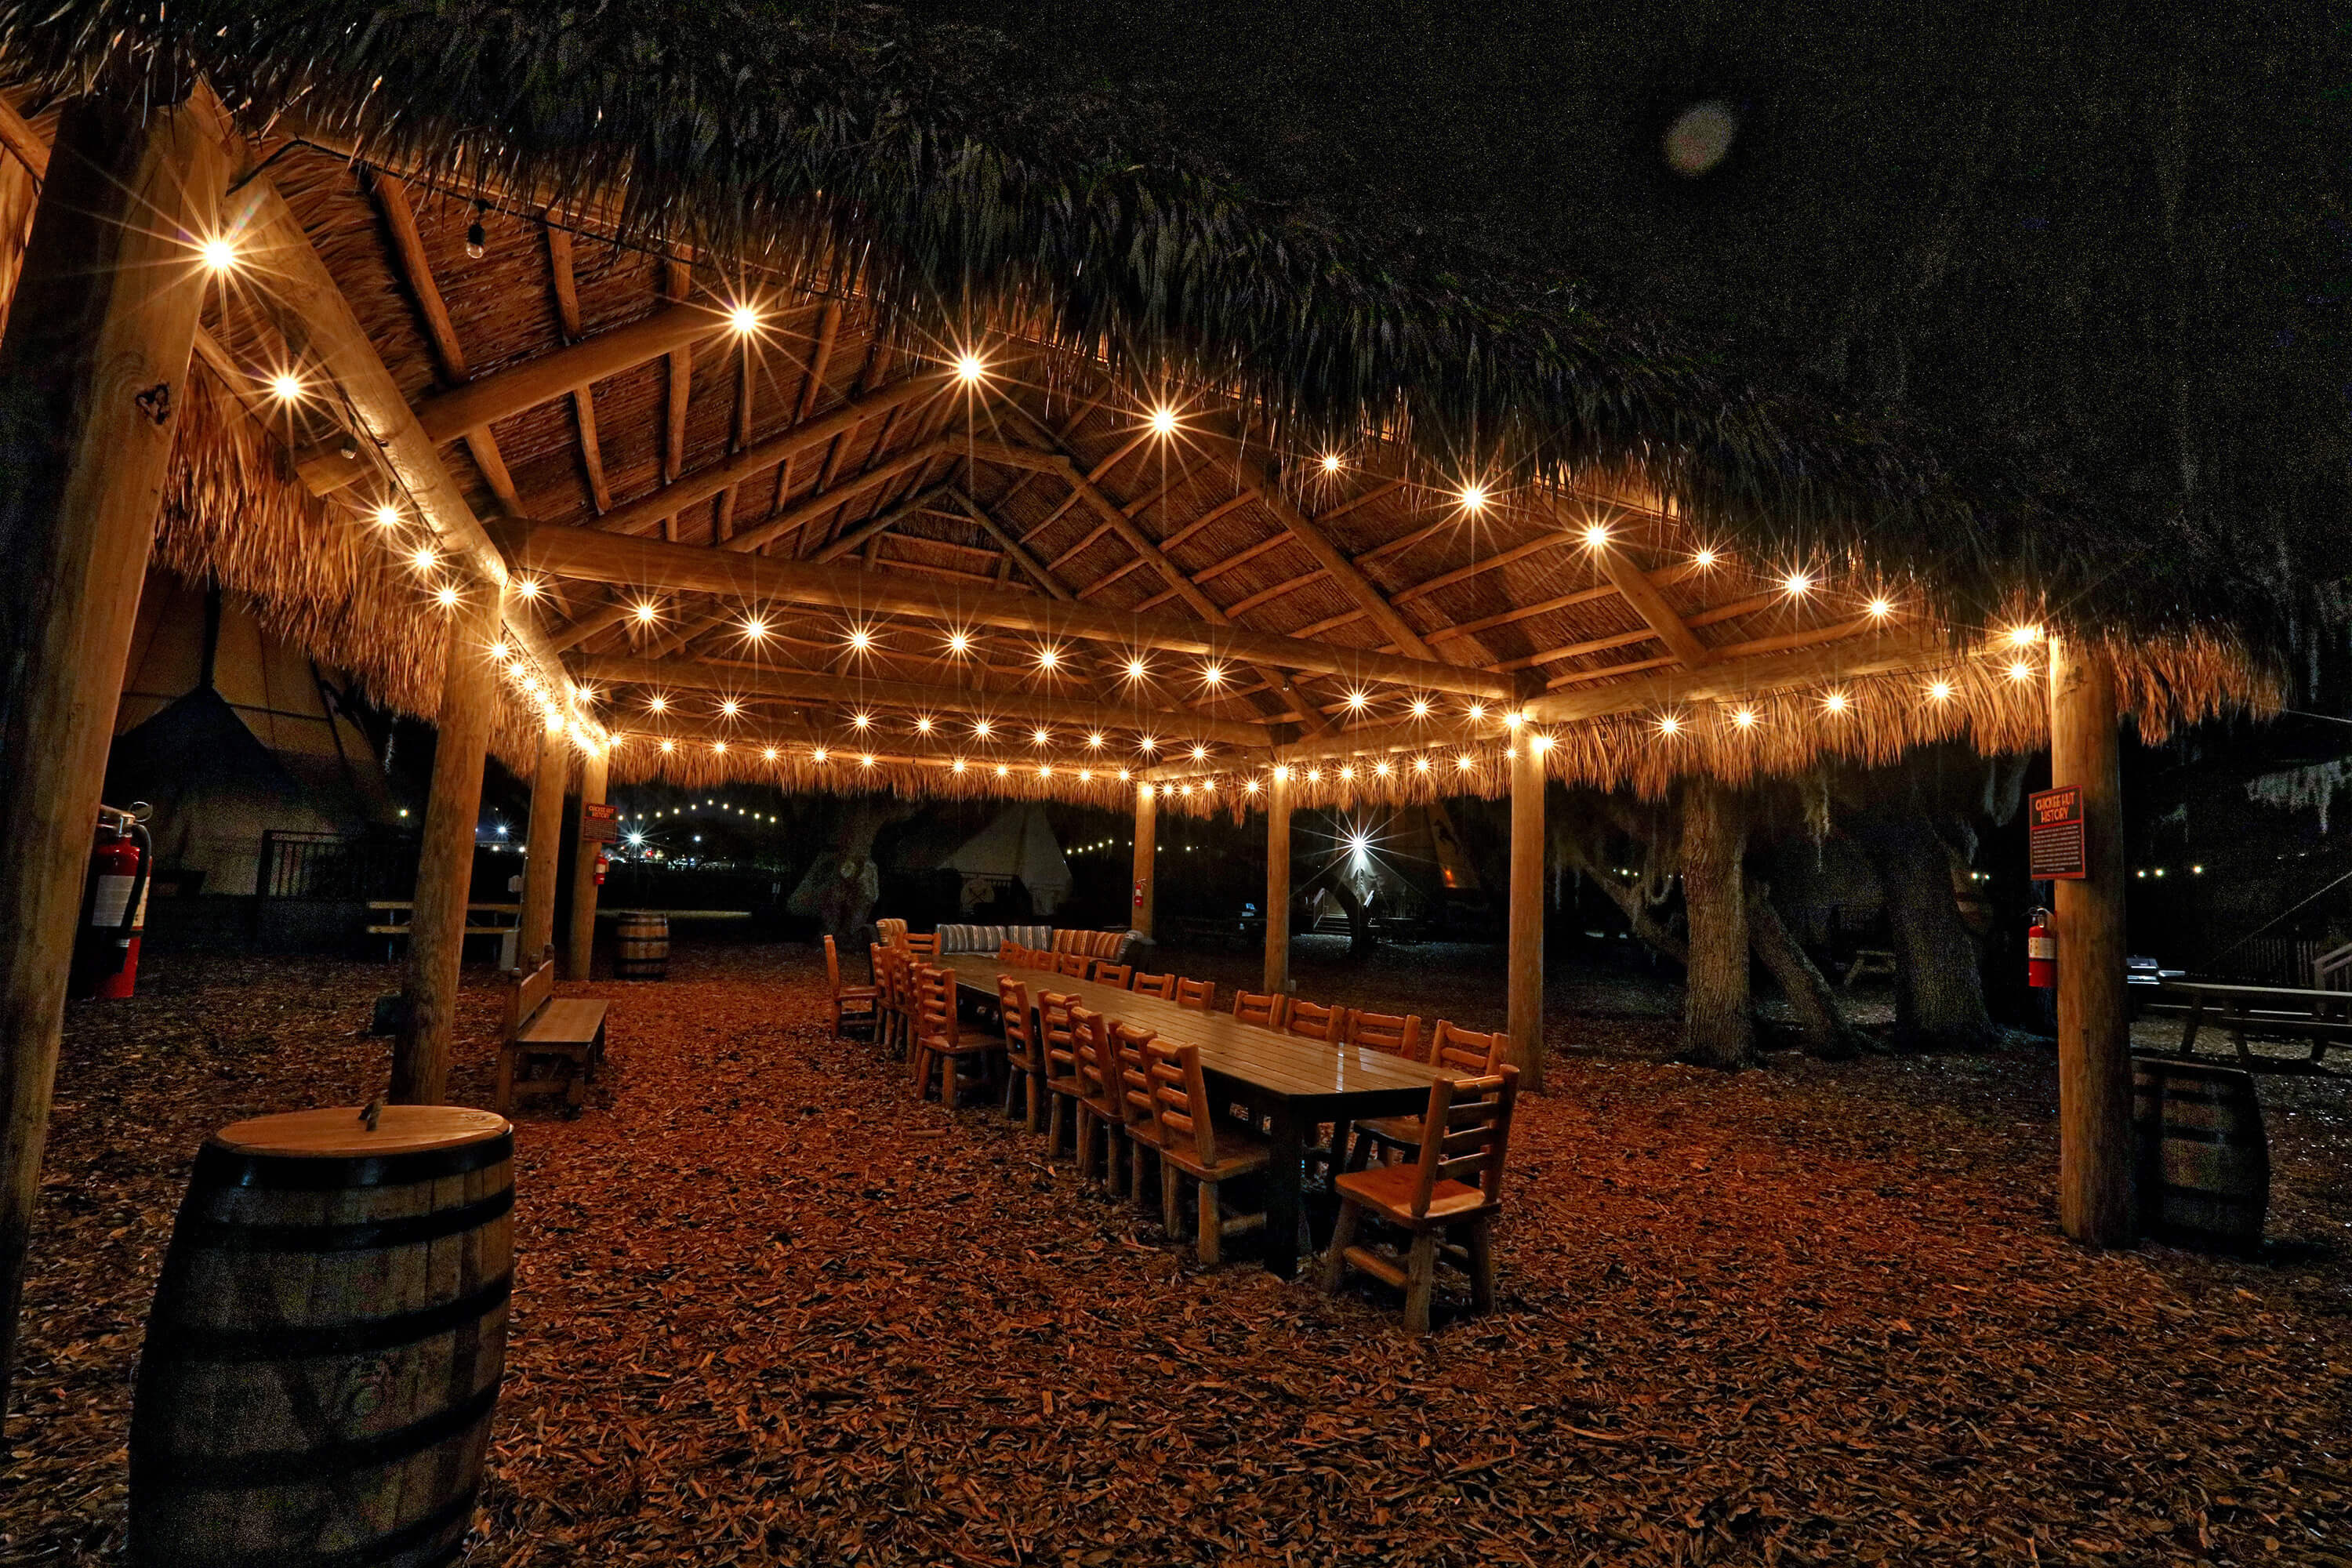 Chickee Hut with palmetto-thatch roof | Westgate River Ranch Resort & Rodeo | Westgate Resorts